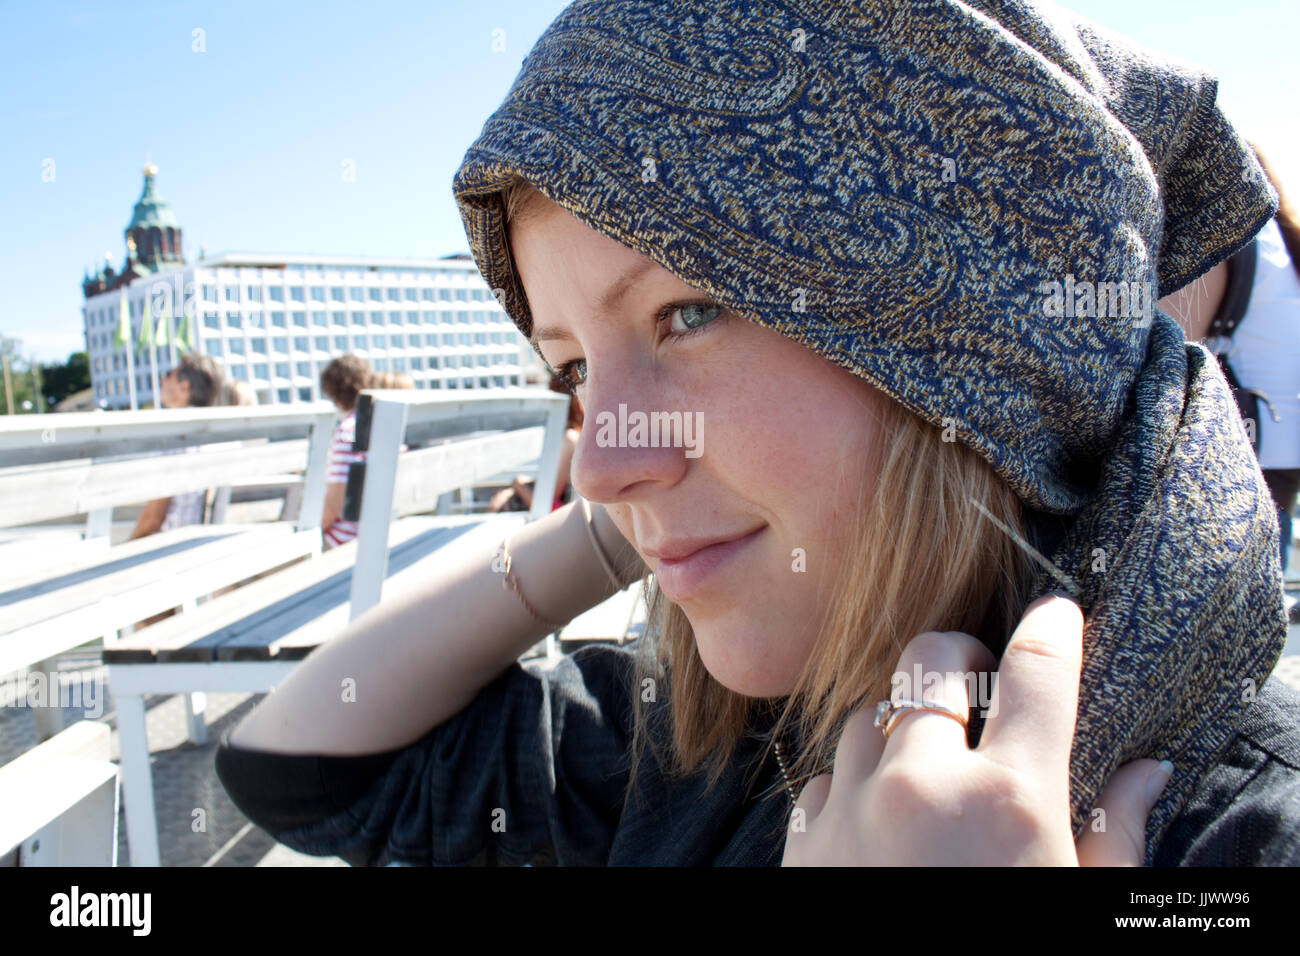 A beautiful young woman putting on her headcloth. - Stock Image